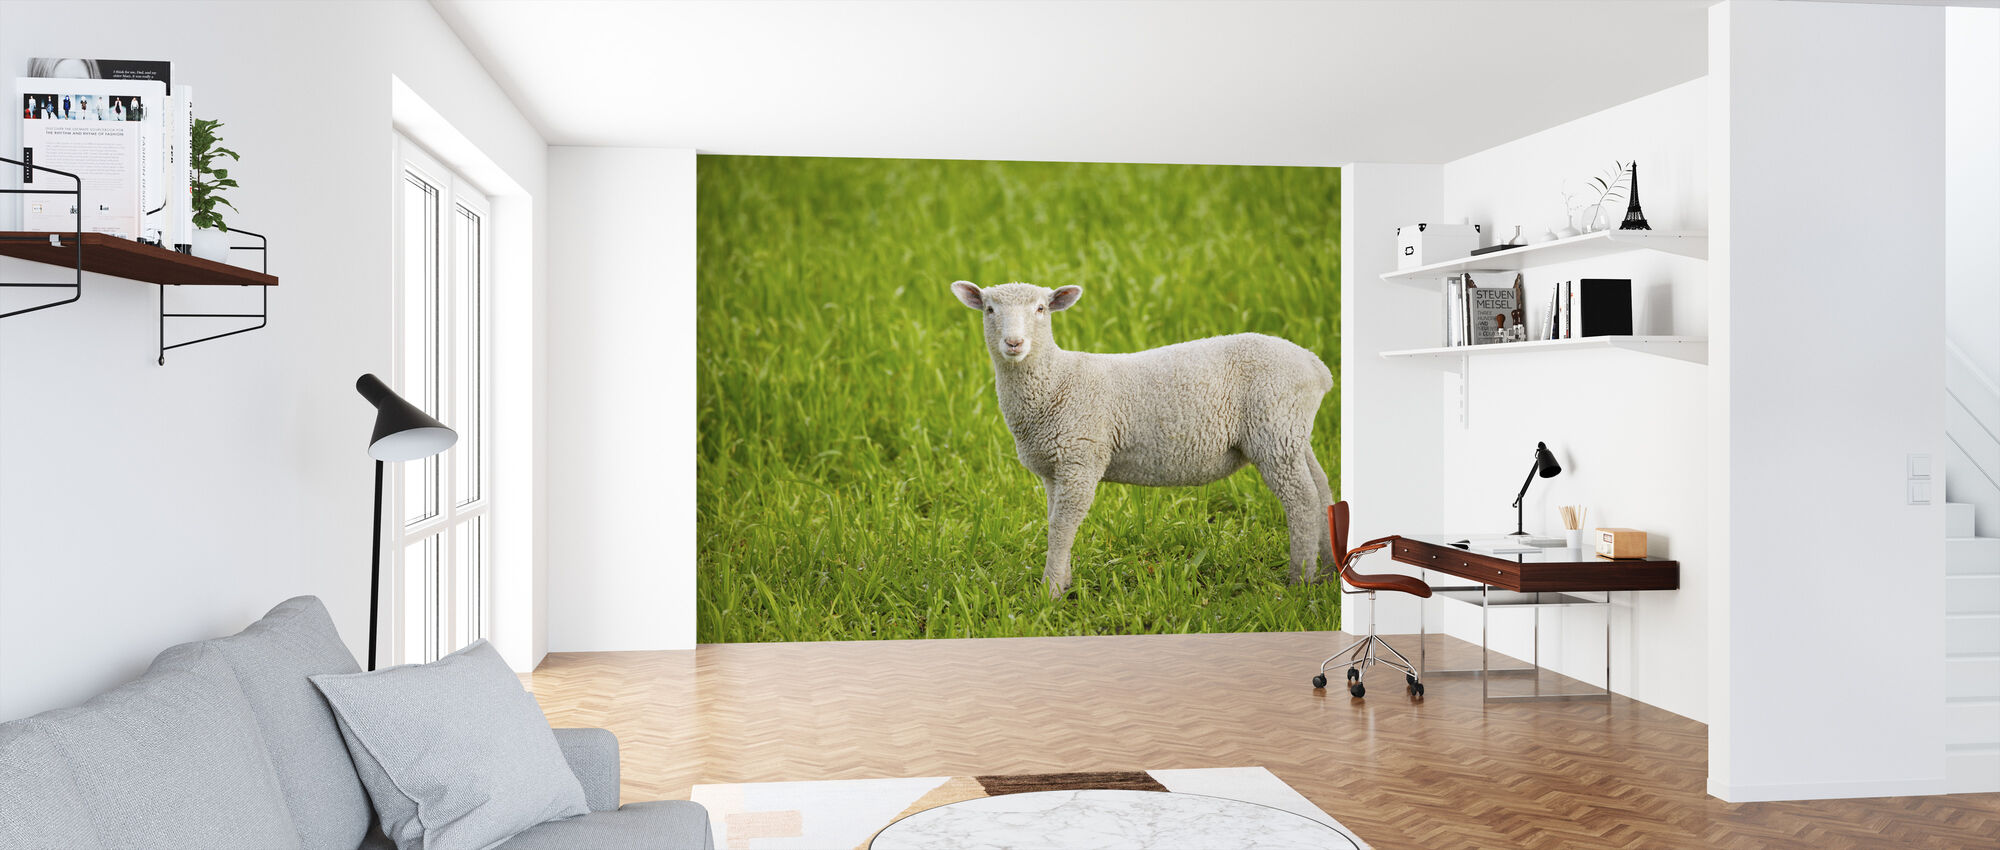 Lamb on Green Grass - Wallpaper - Office